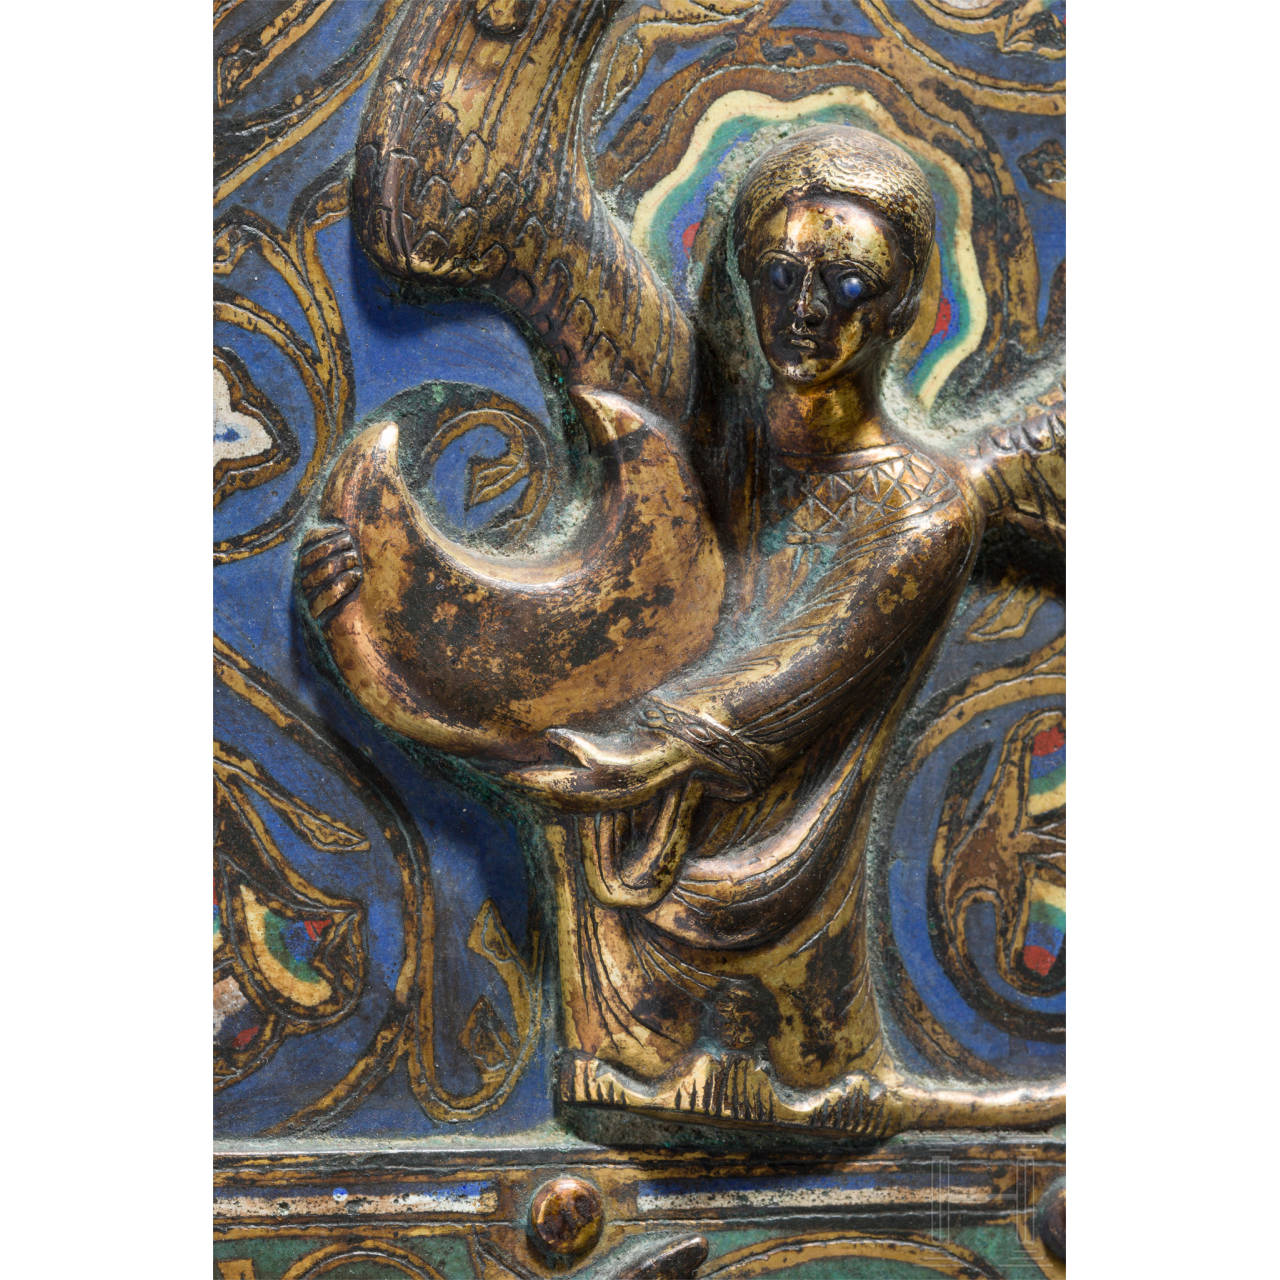 A large champlevé picture panel in the style of the 12th/13th century, Limoges, mid 19th century